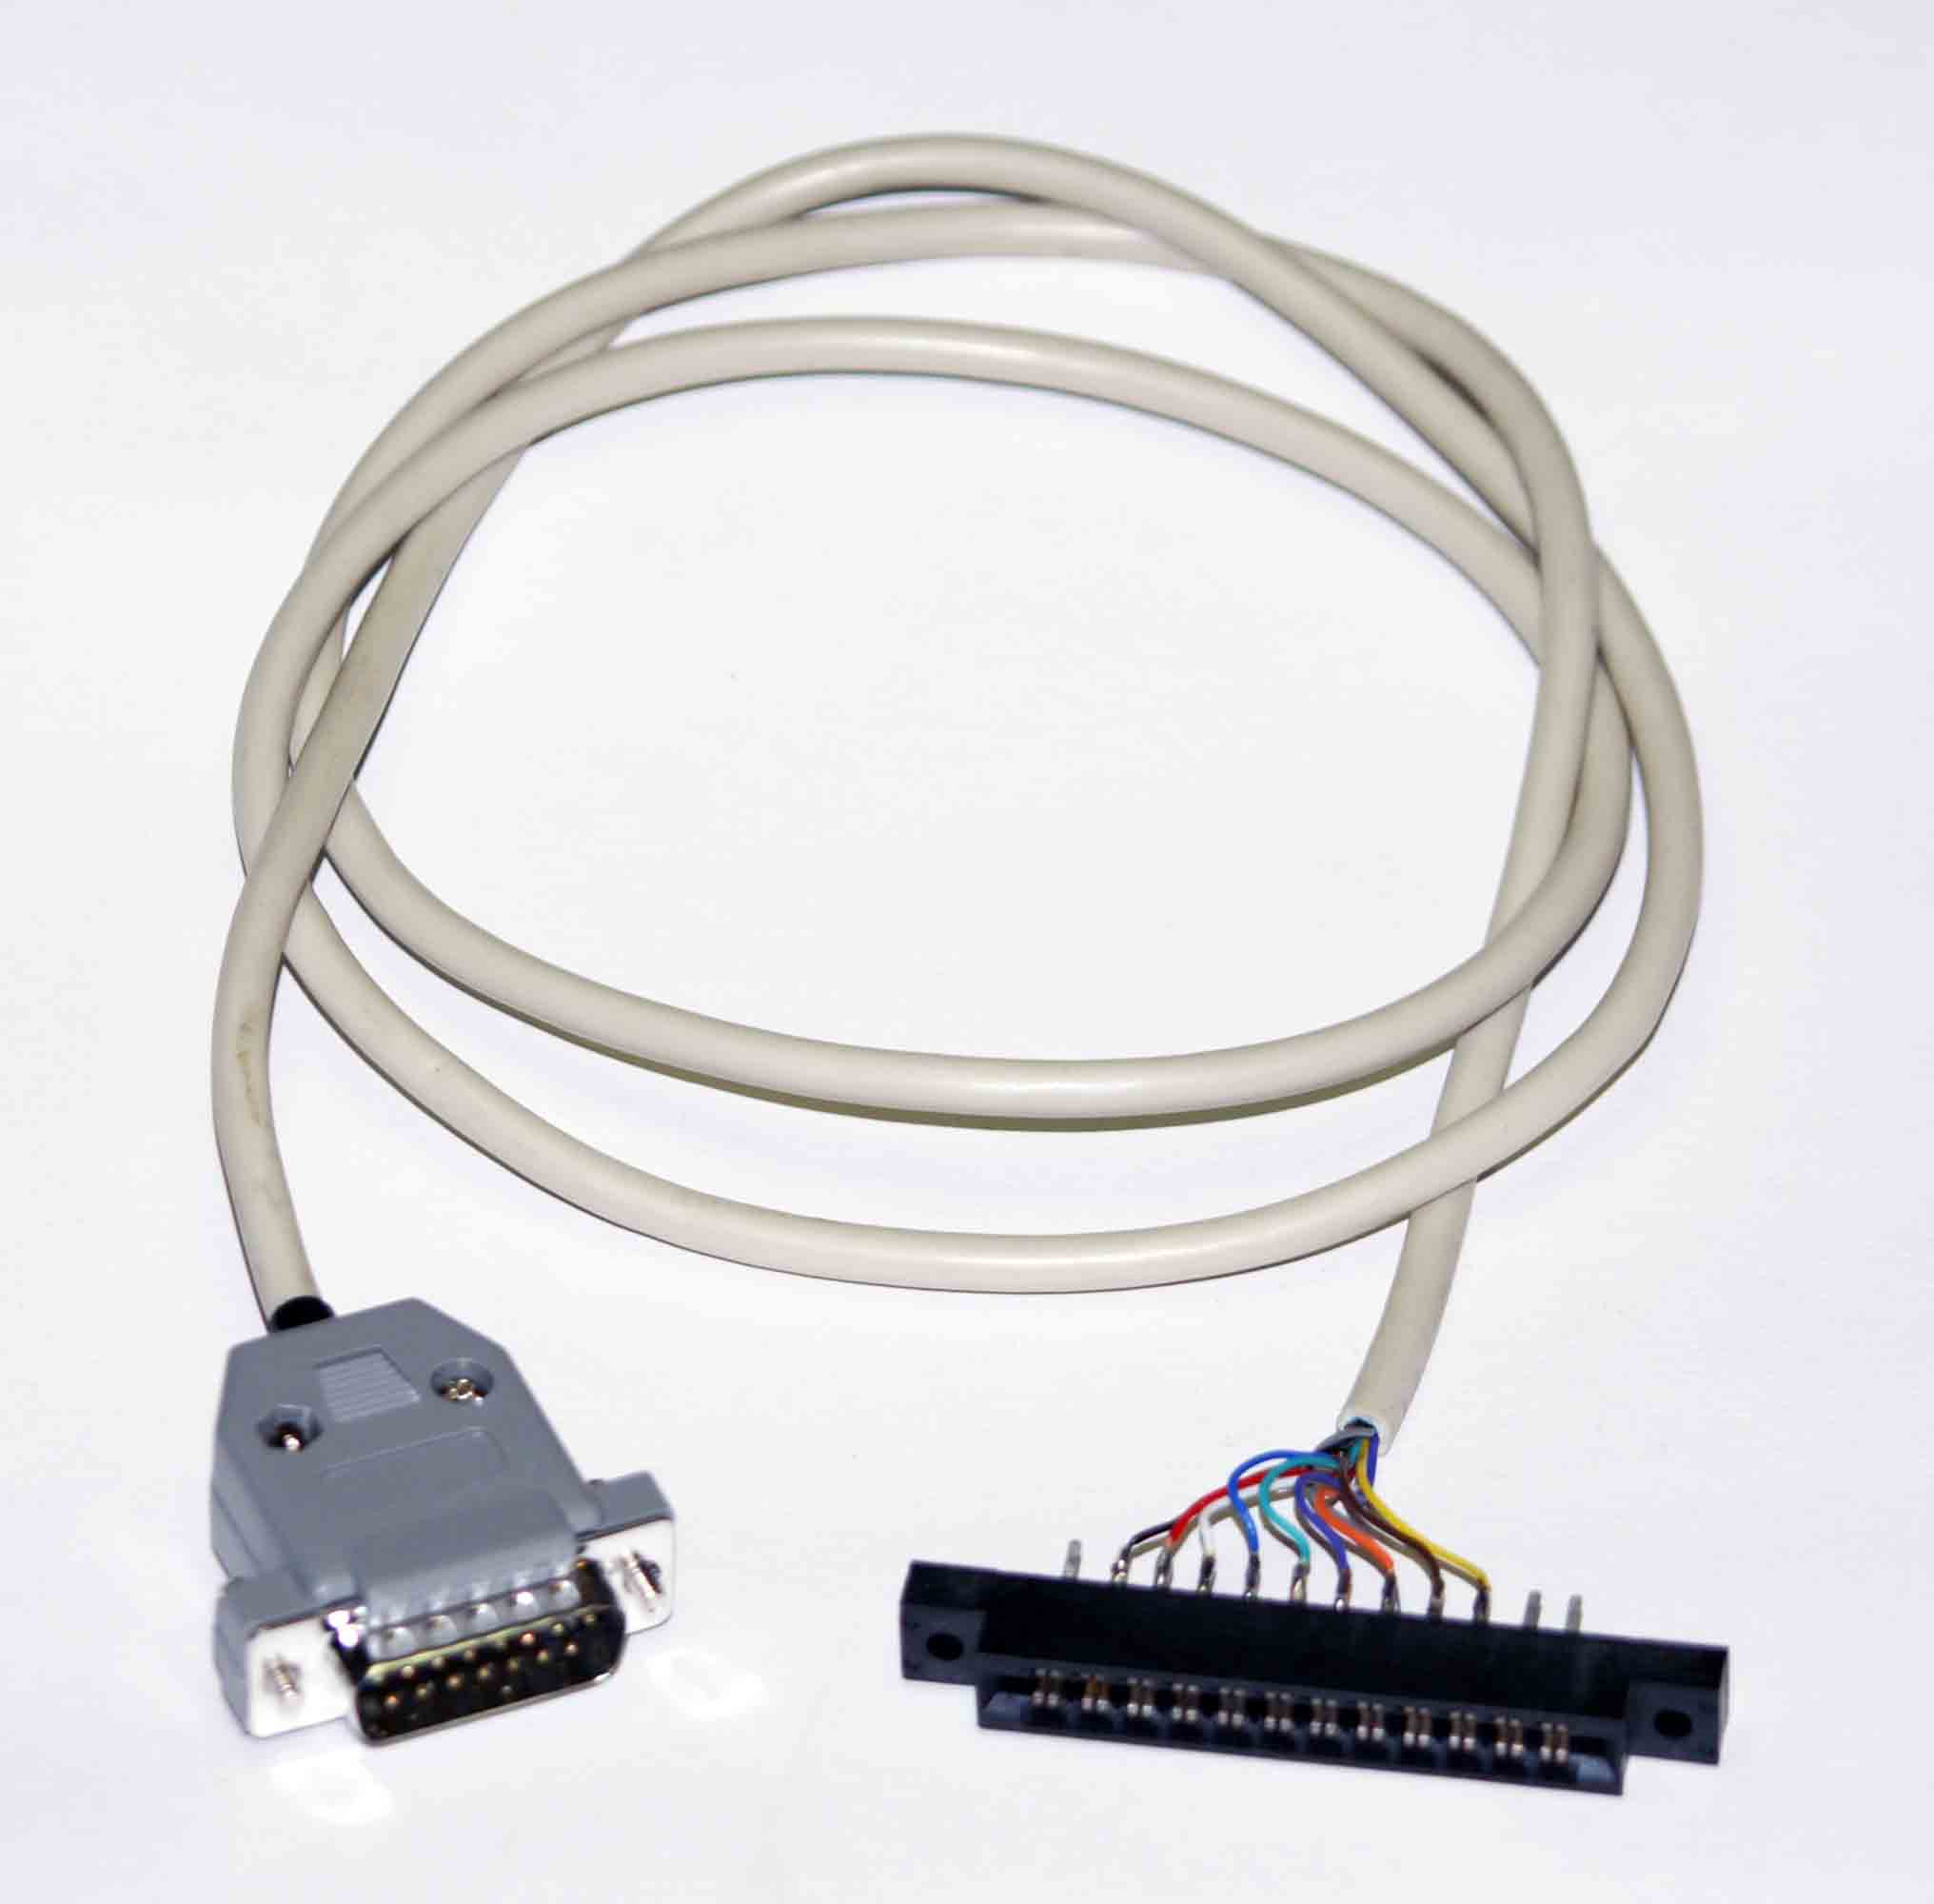 Parallel Ata Cable Port : Building the c to disk drive parallel cable